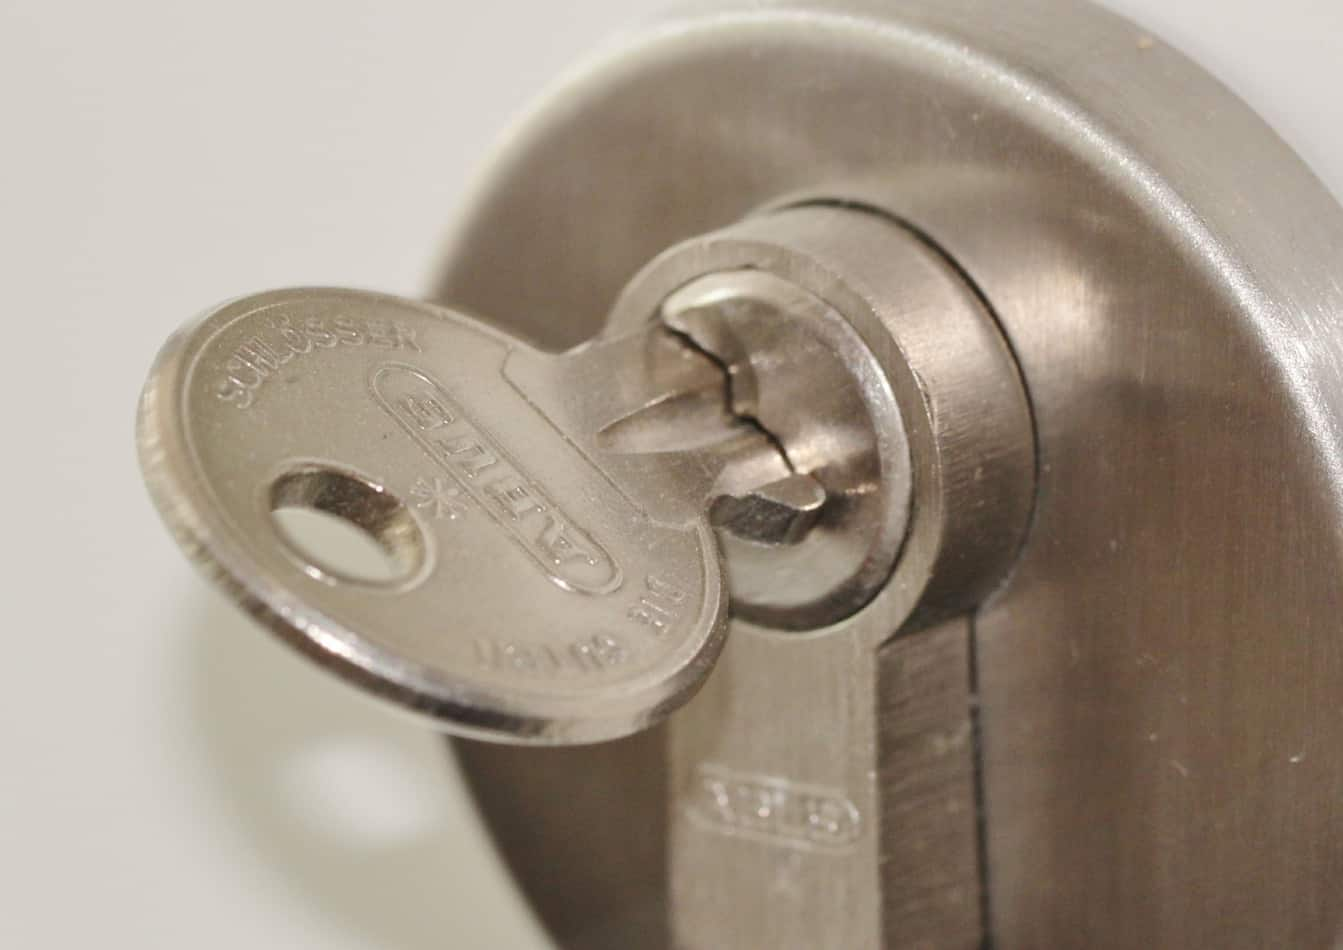 The DIY Help Desk Lock and key